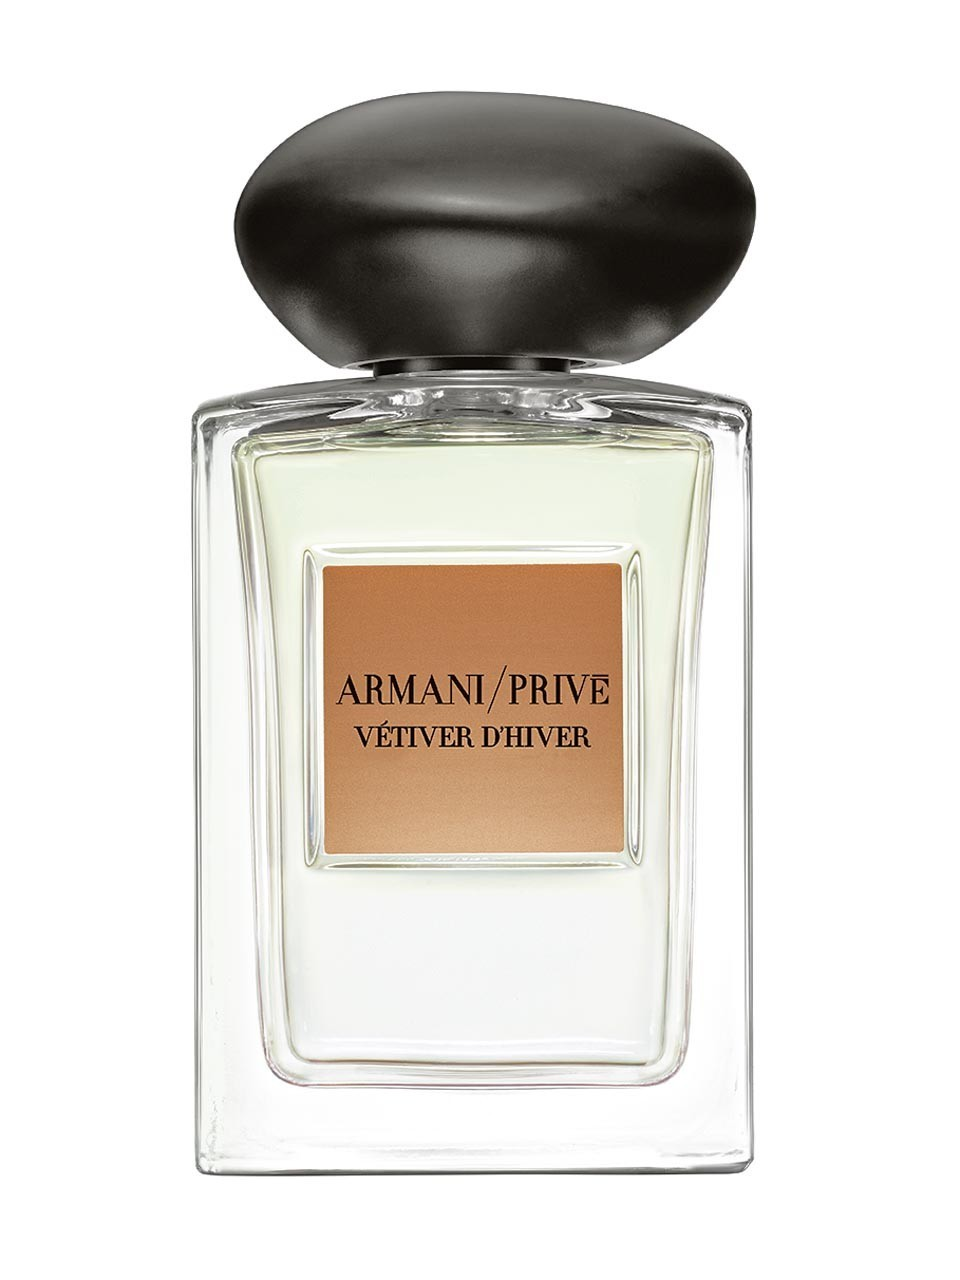 VETIVER D'HIVER by Armani/Prive 5ml Travel Spray Perfume CORIANDER BERGAMOTE